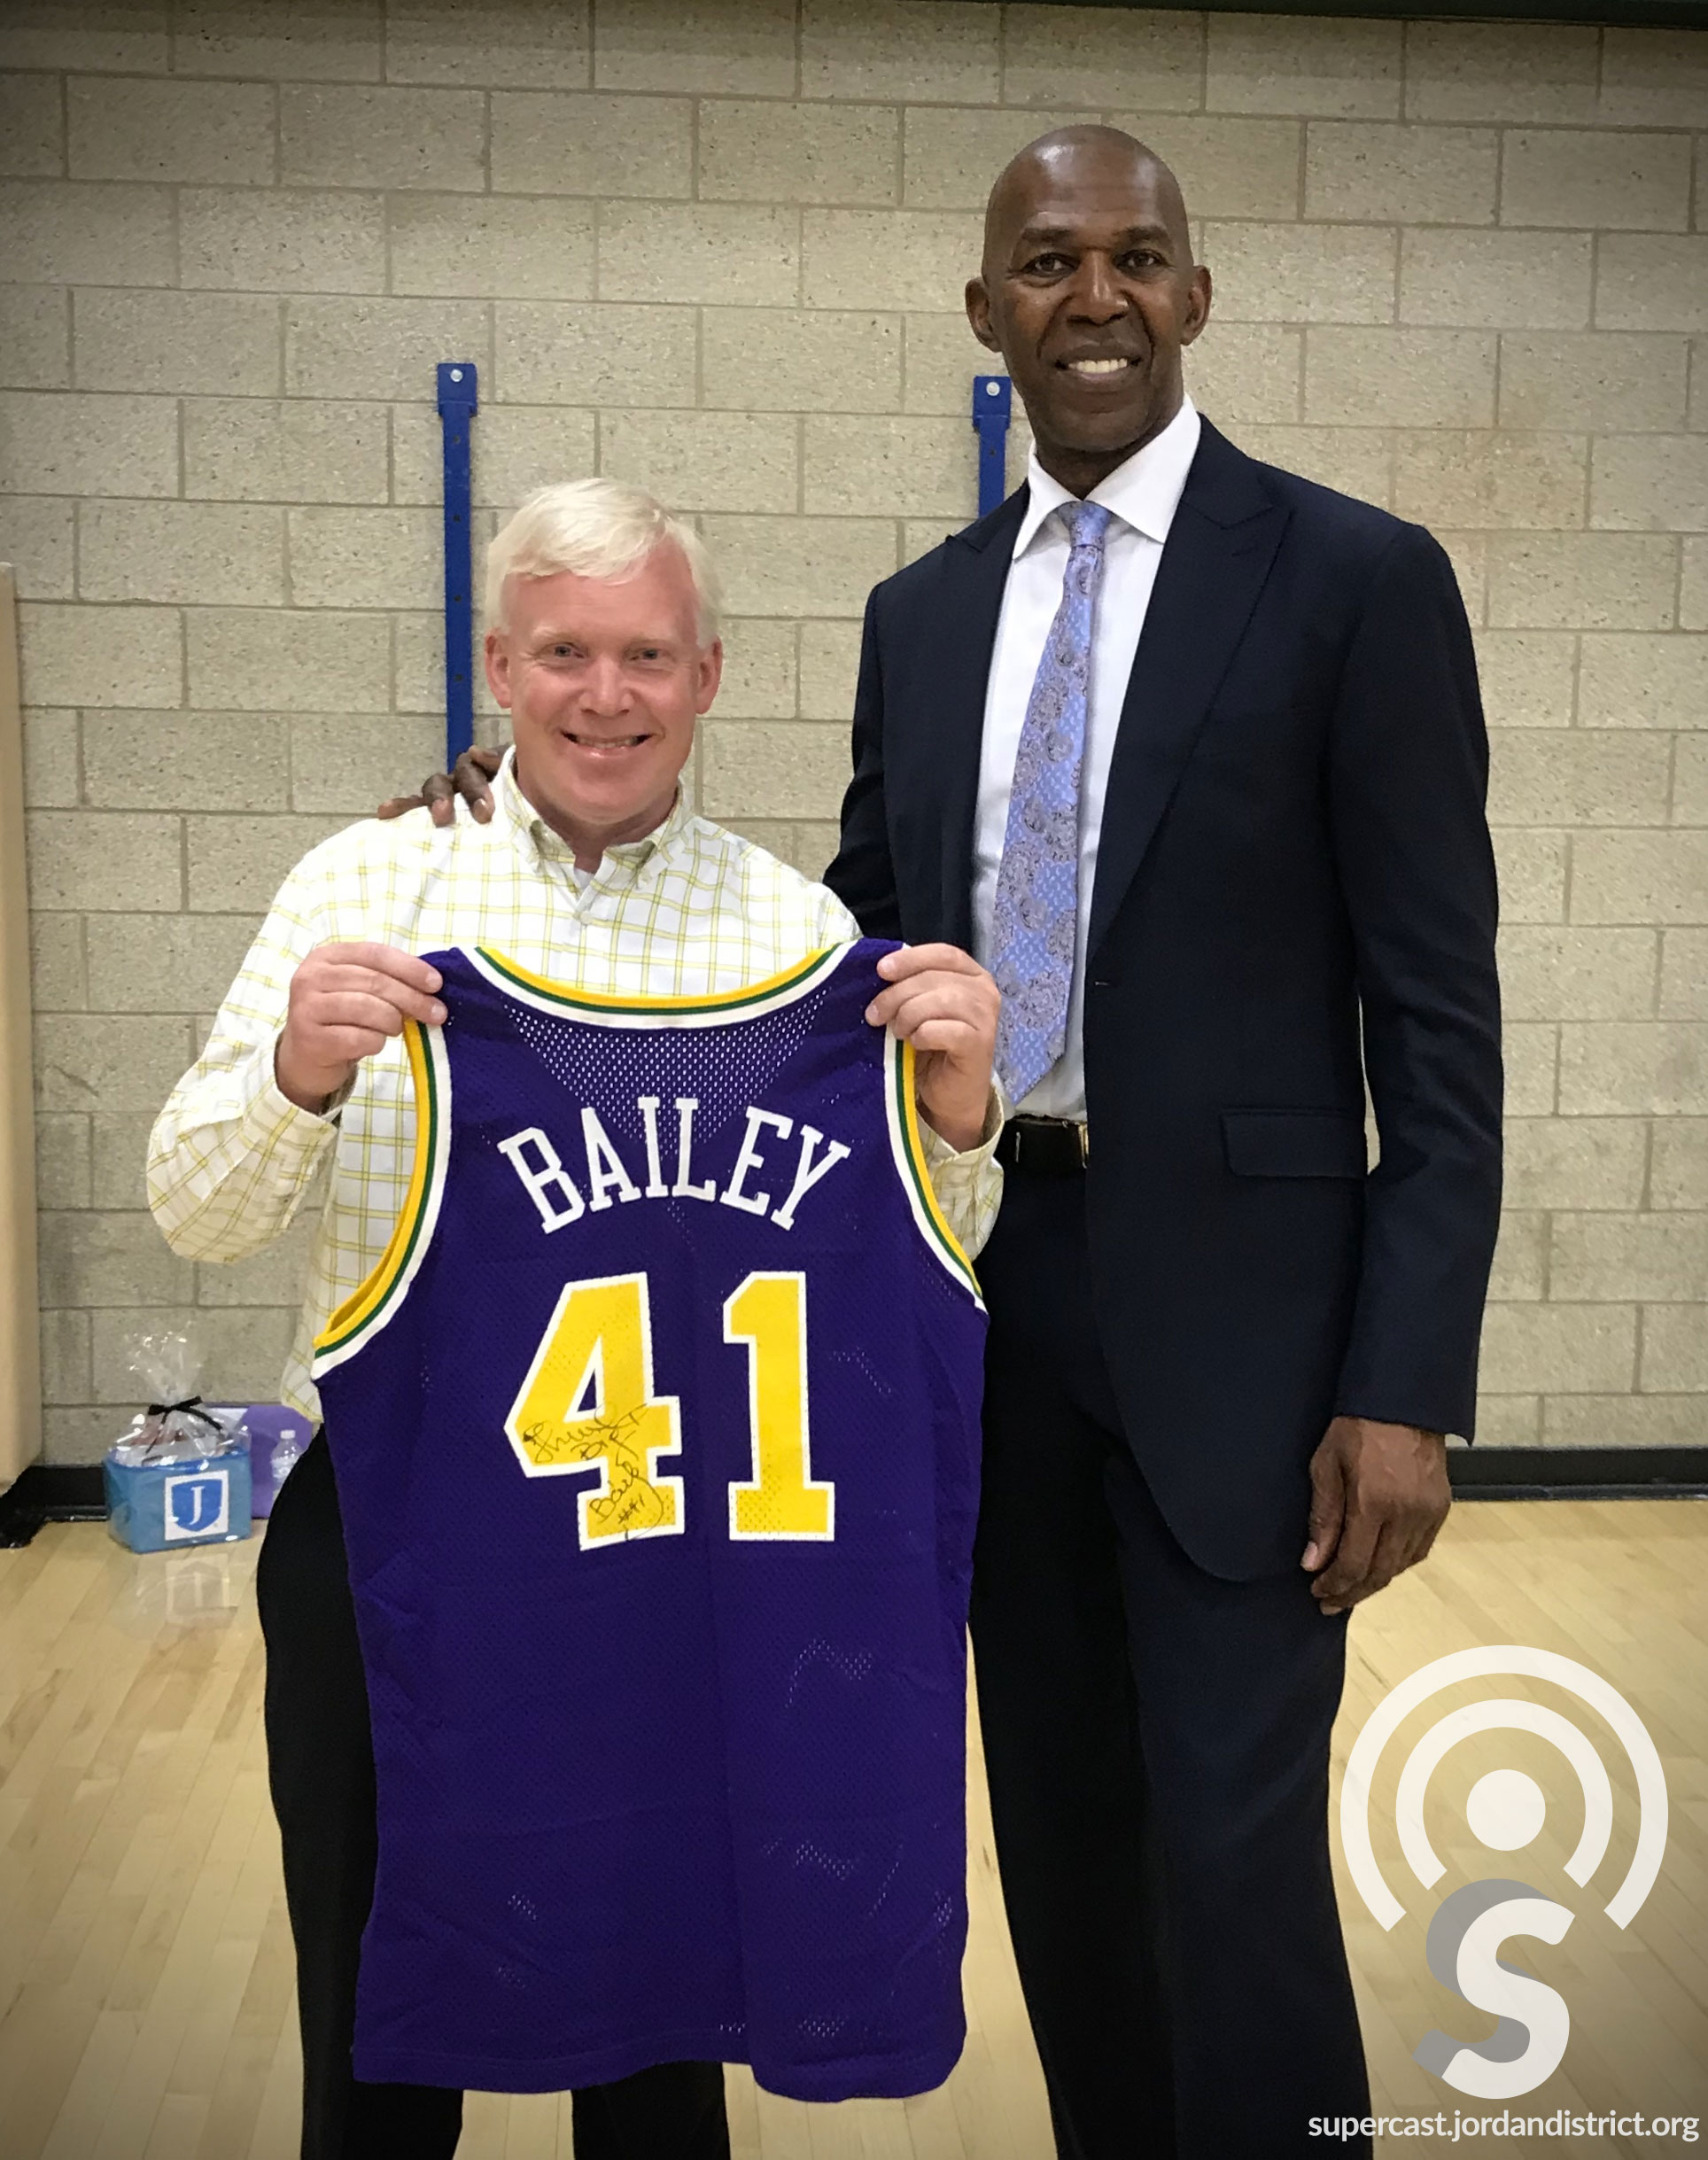 Anthony Godfrey holds Thurl Bailey's #41 Jersey while standing with him